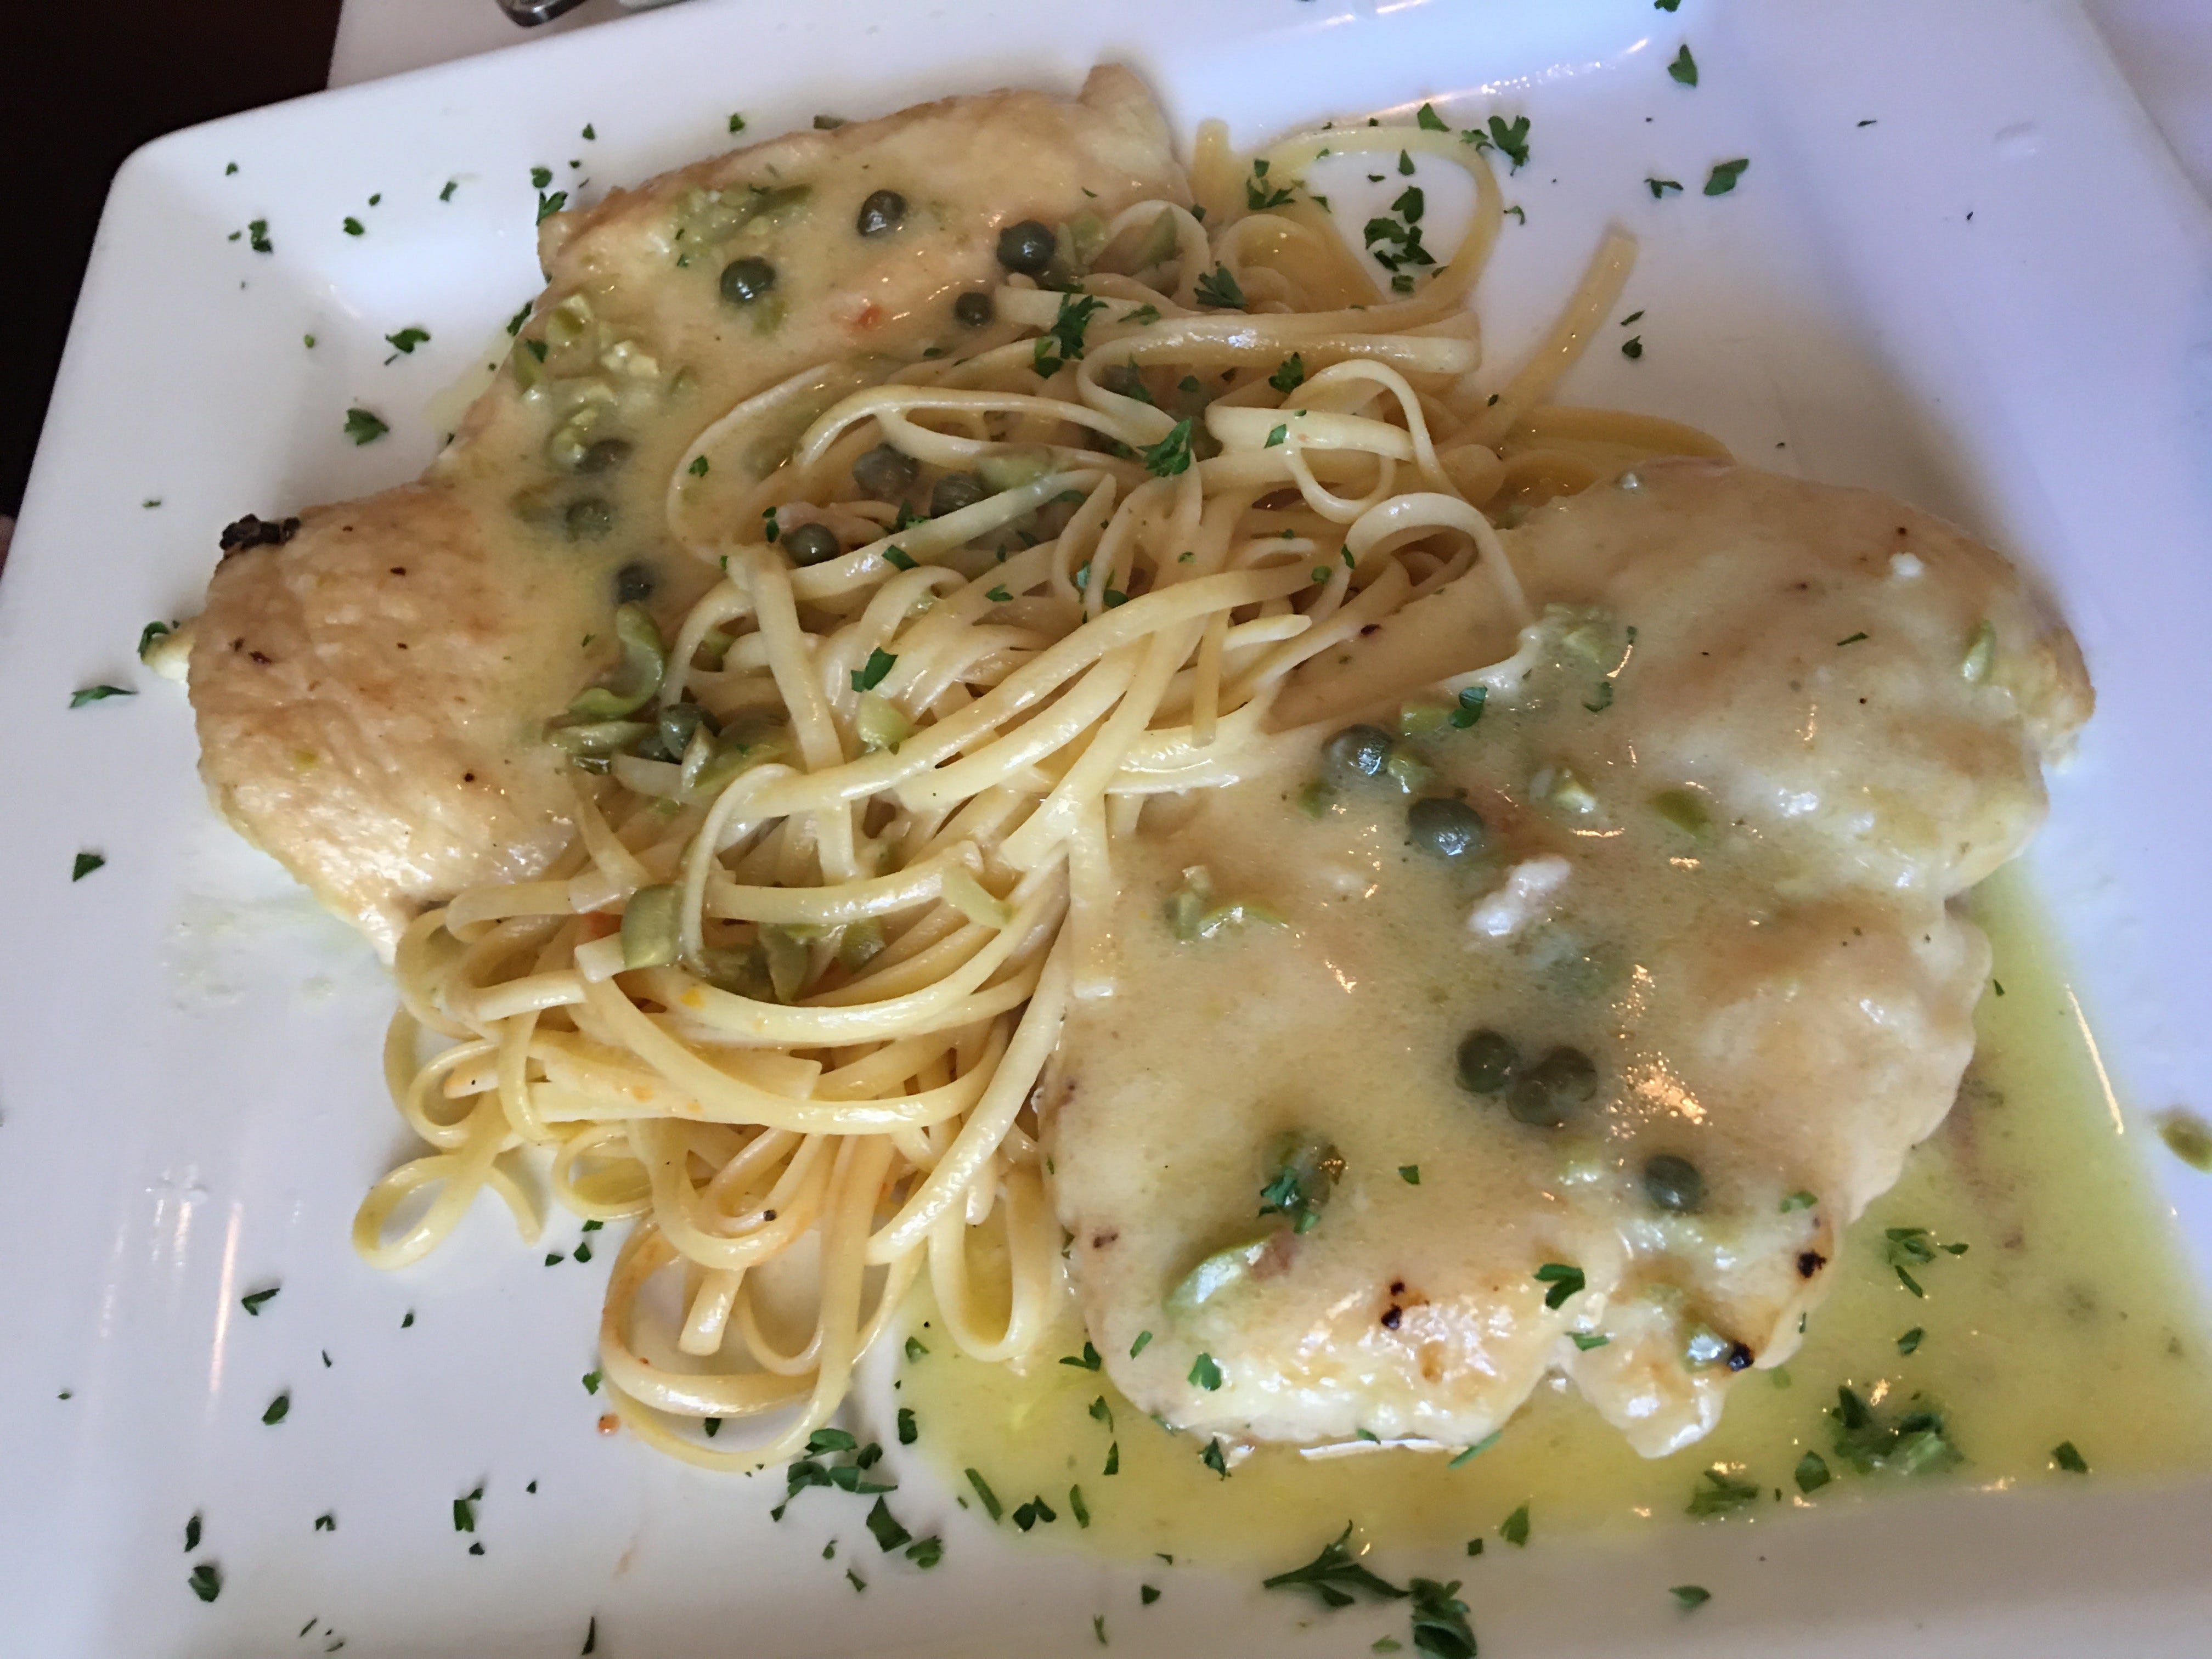 636383260041528933-DovePiccata2 The people of Dove III in Melbourne understand love of food